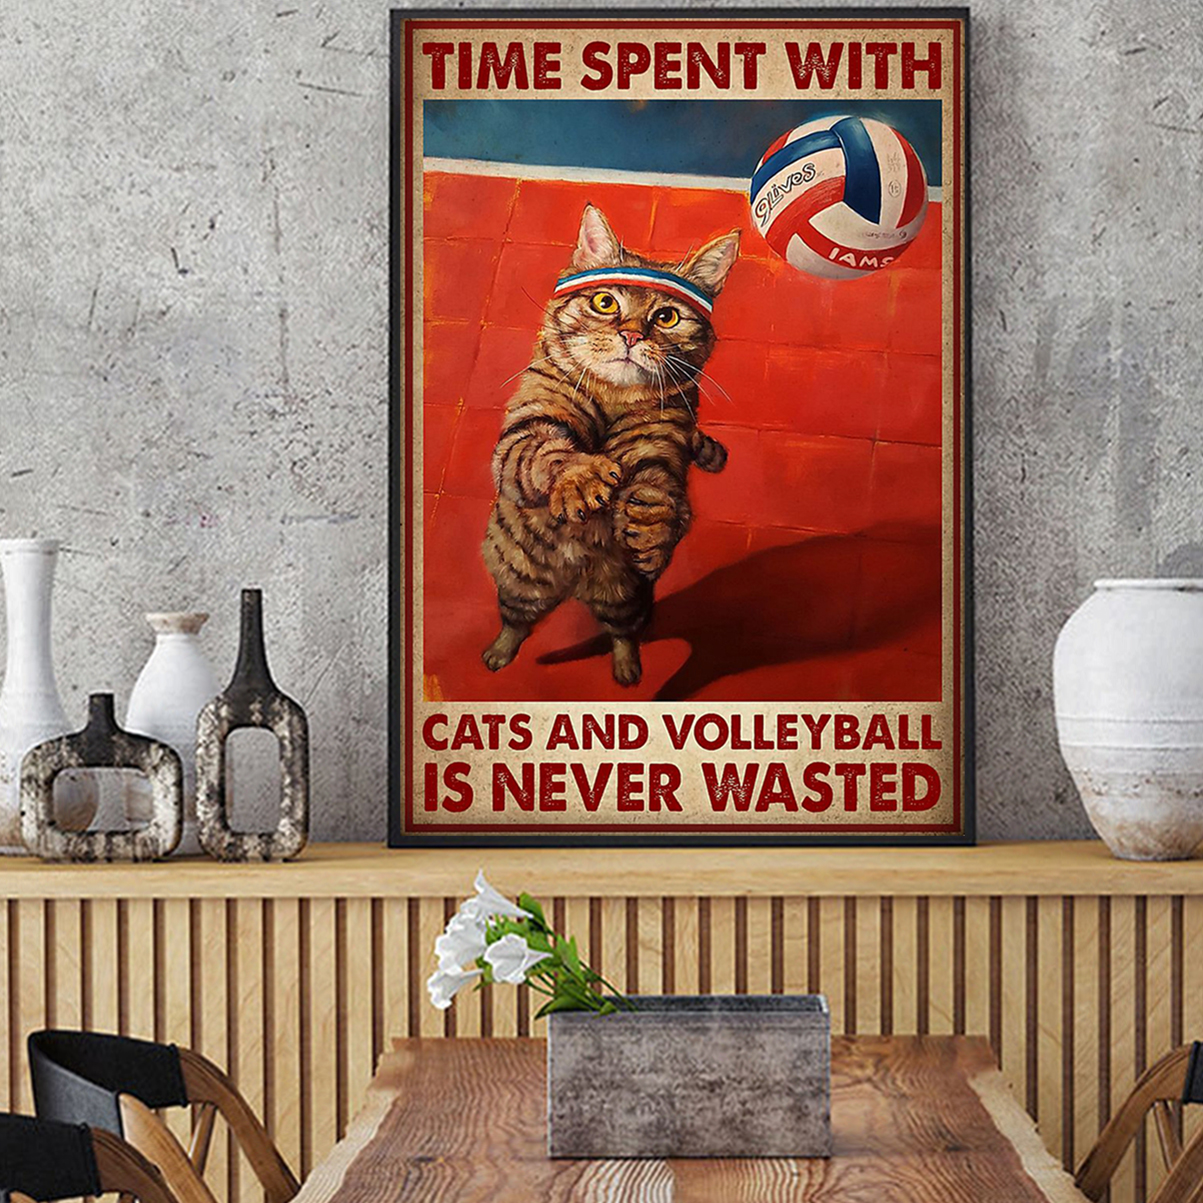 Time spent with cats and volleyball is never wasted poster A2